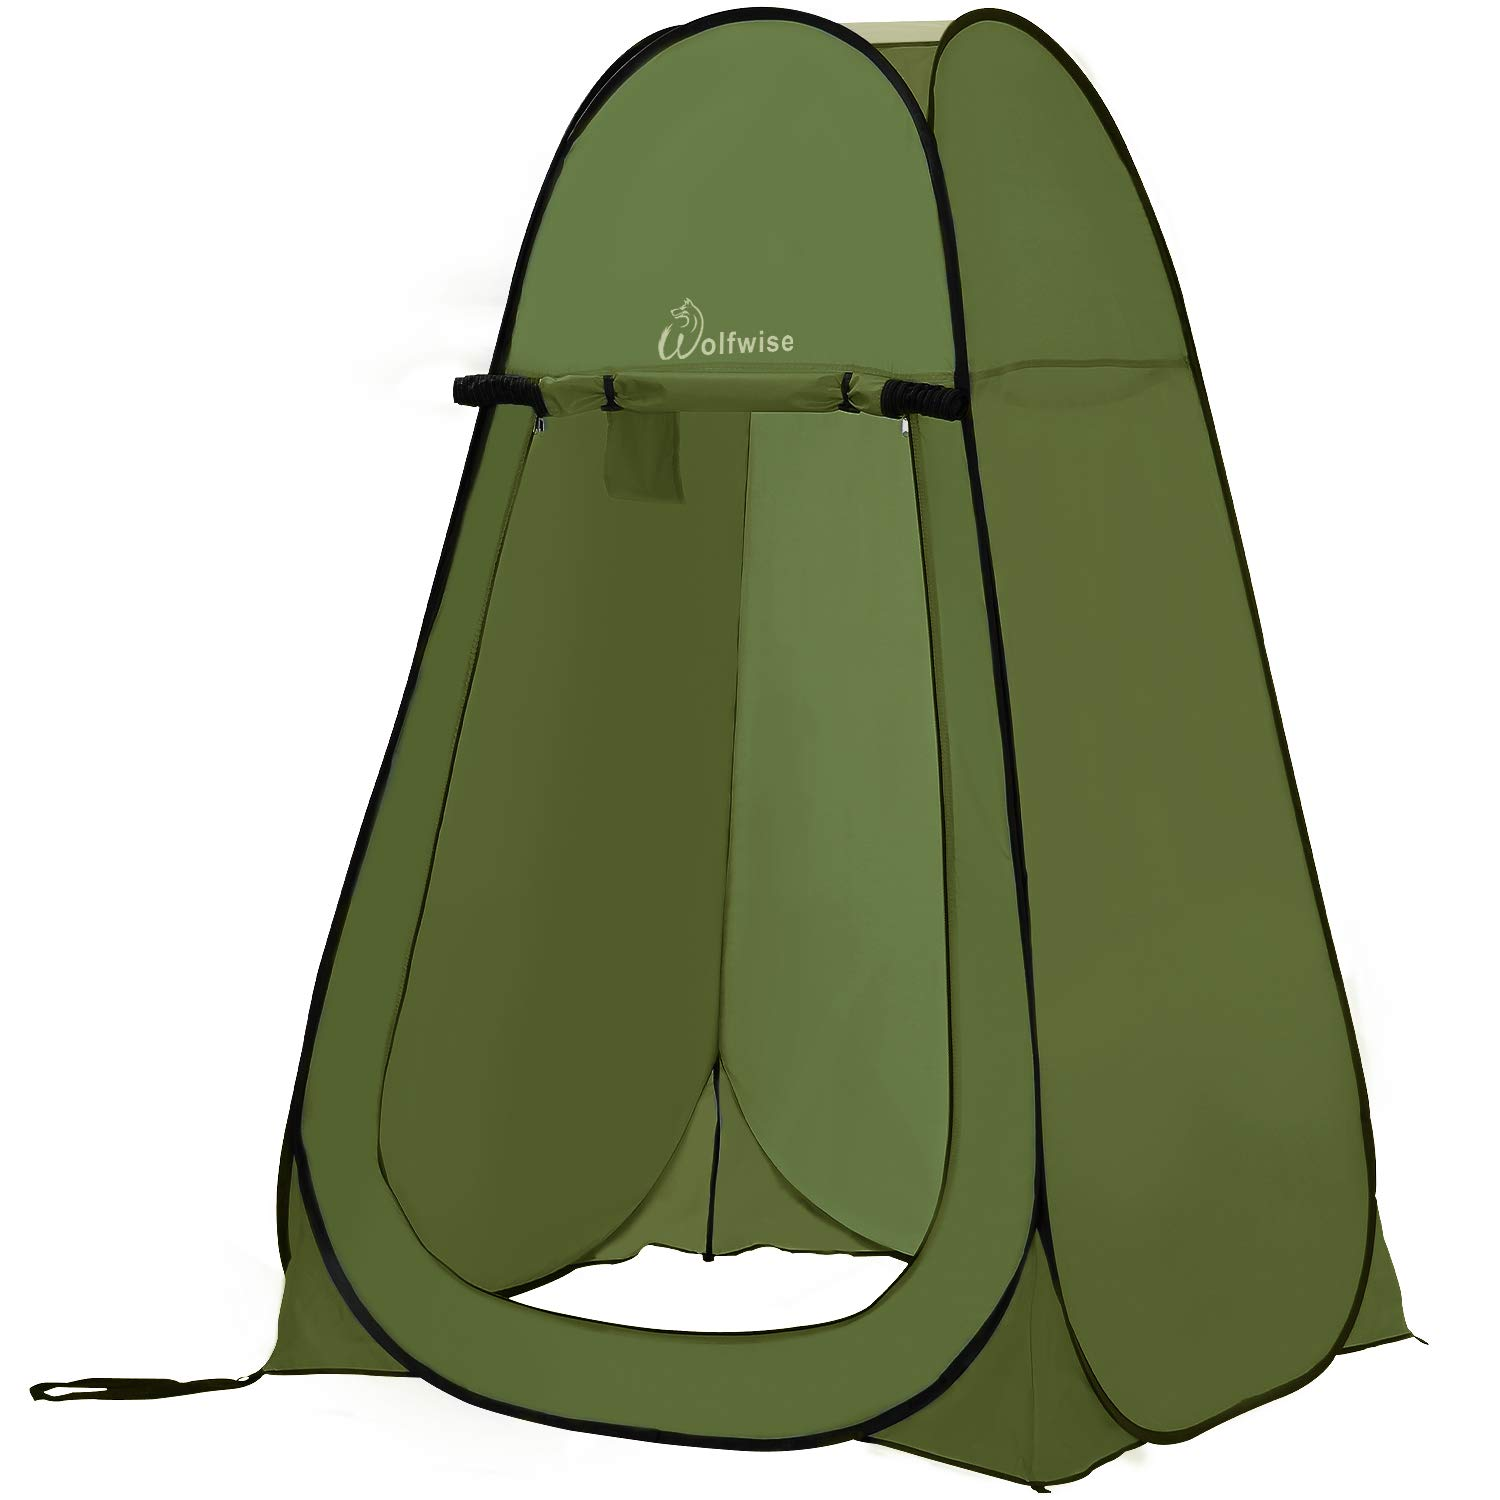 WolfWise Pop up Shower Tent Green